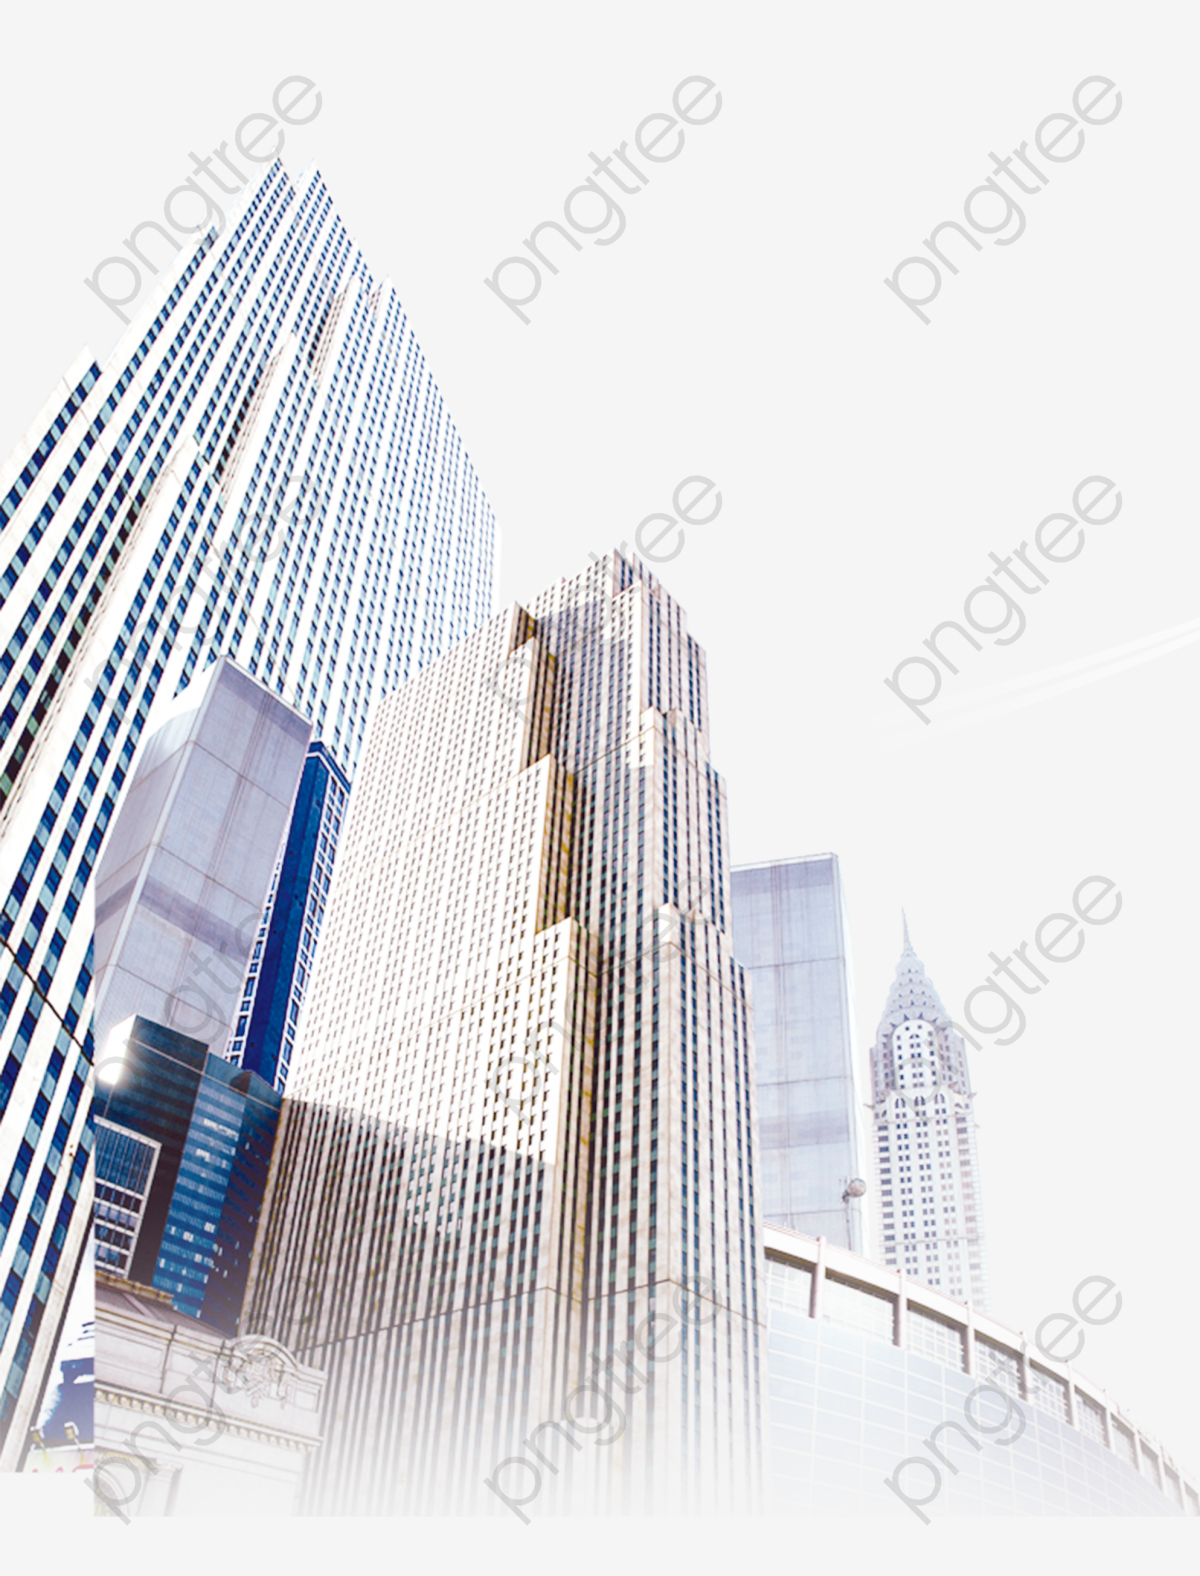 City High Rise Buildings, High Rise, Building, Luxury Hotel PNG.